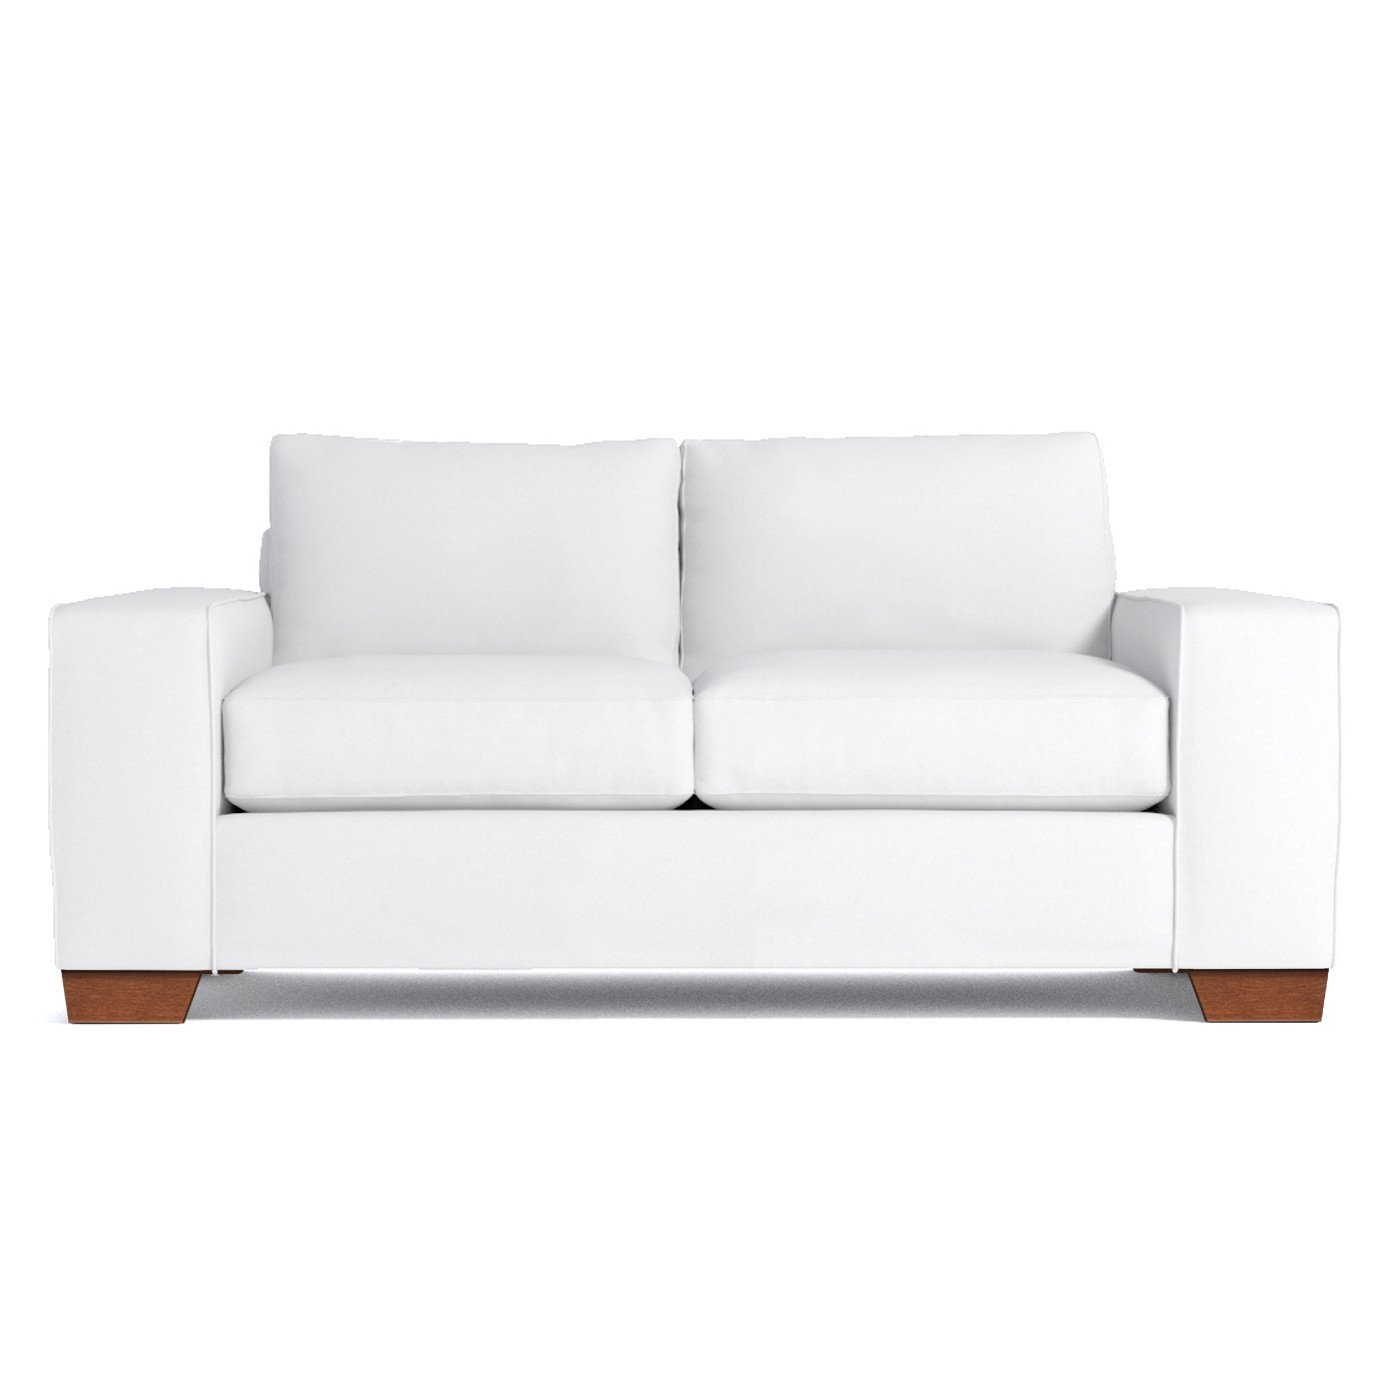 Amazon.com: Melrose Apartment Size Sofa, White, 68